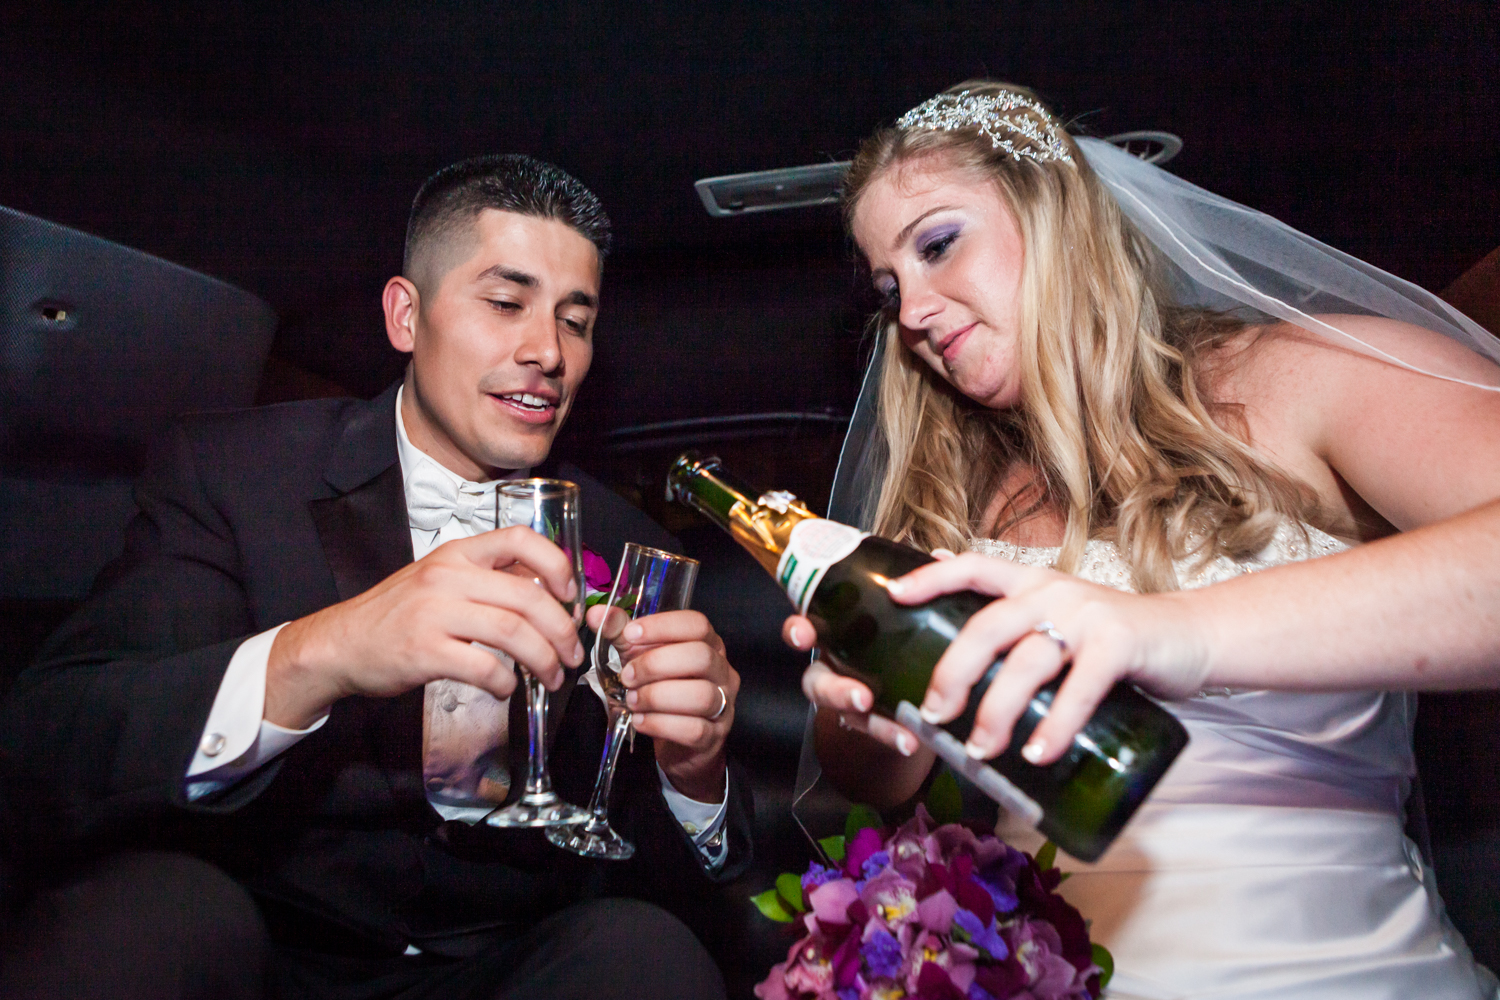 Bride pouring champagne into glasses held by groom